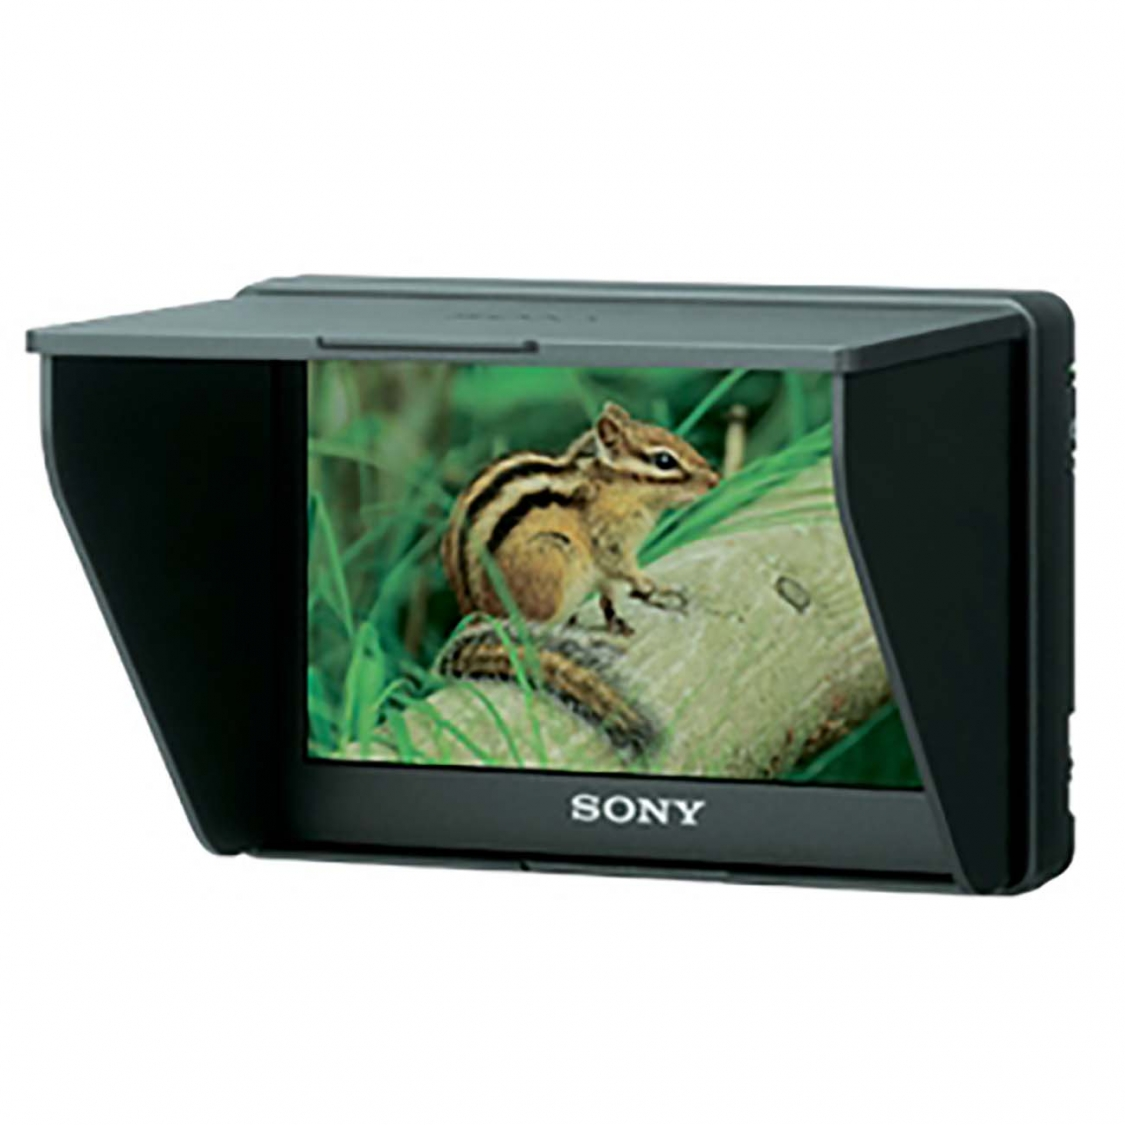 Sony CLM-V55 5-inch Portable Monitor